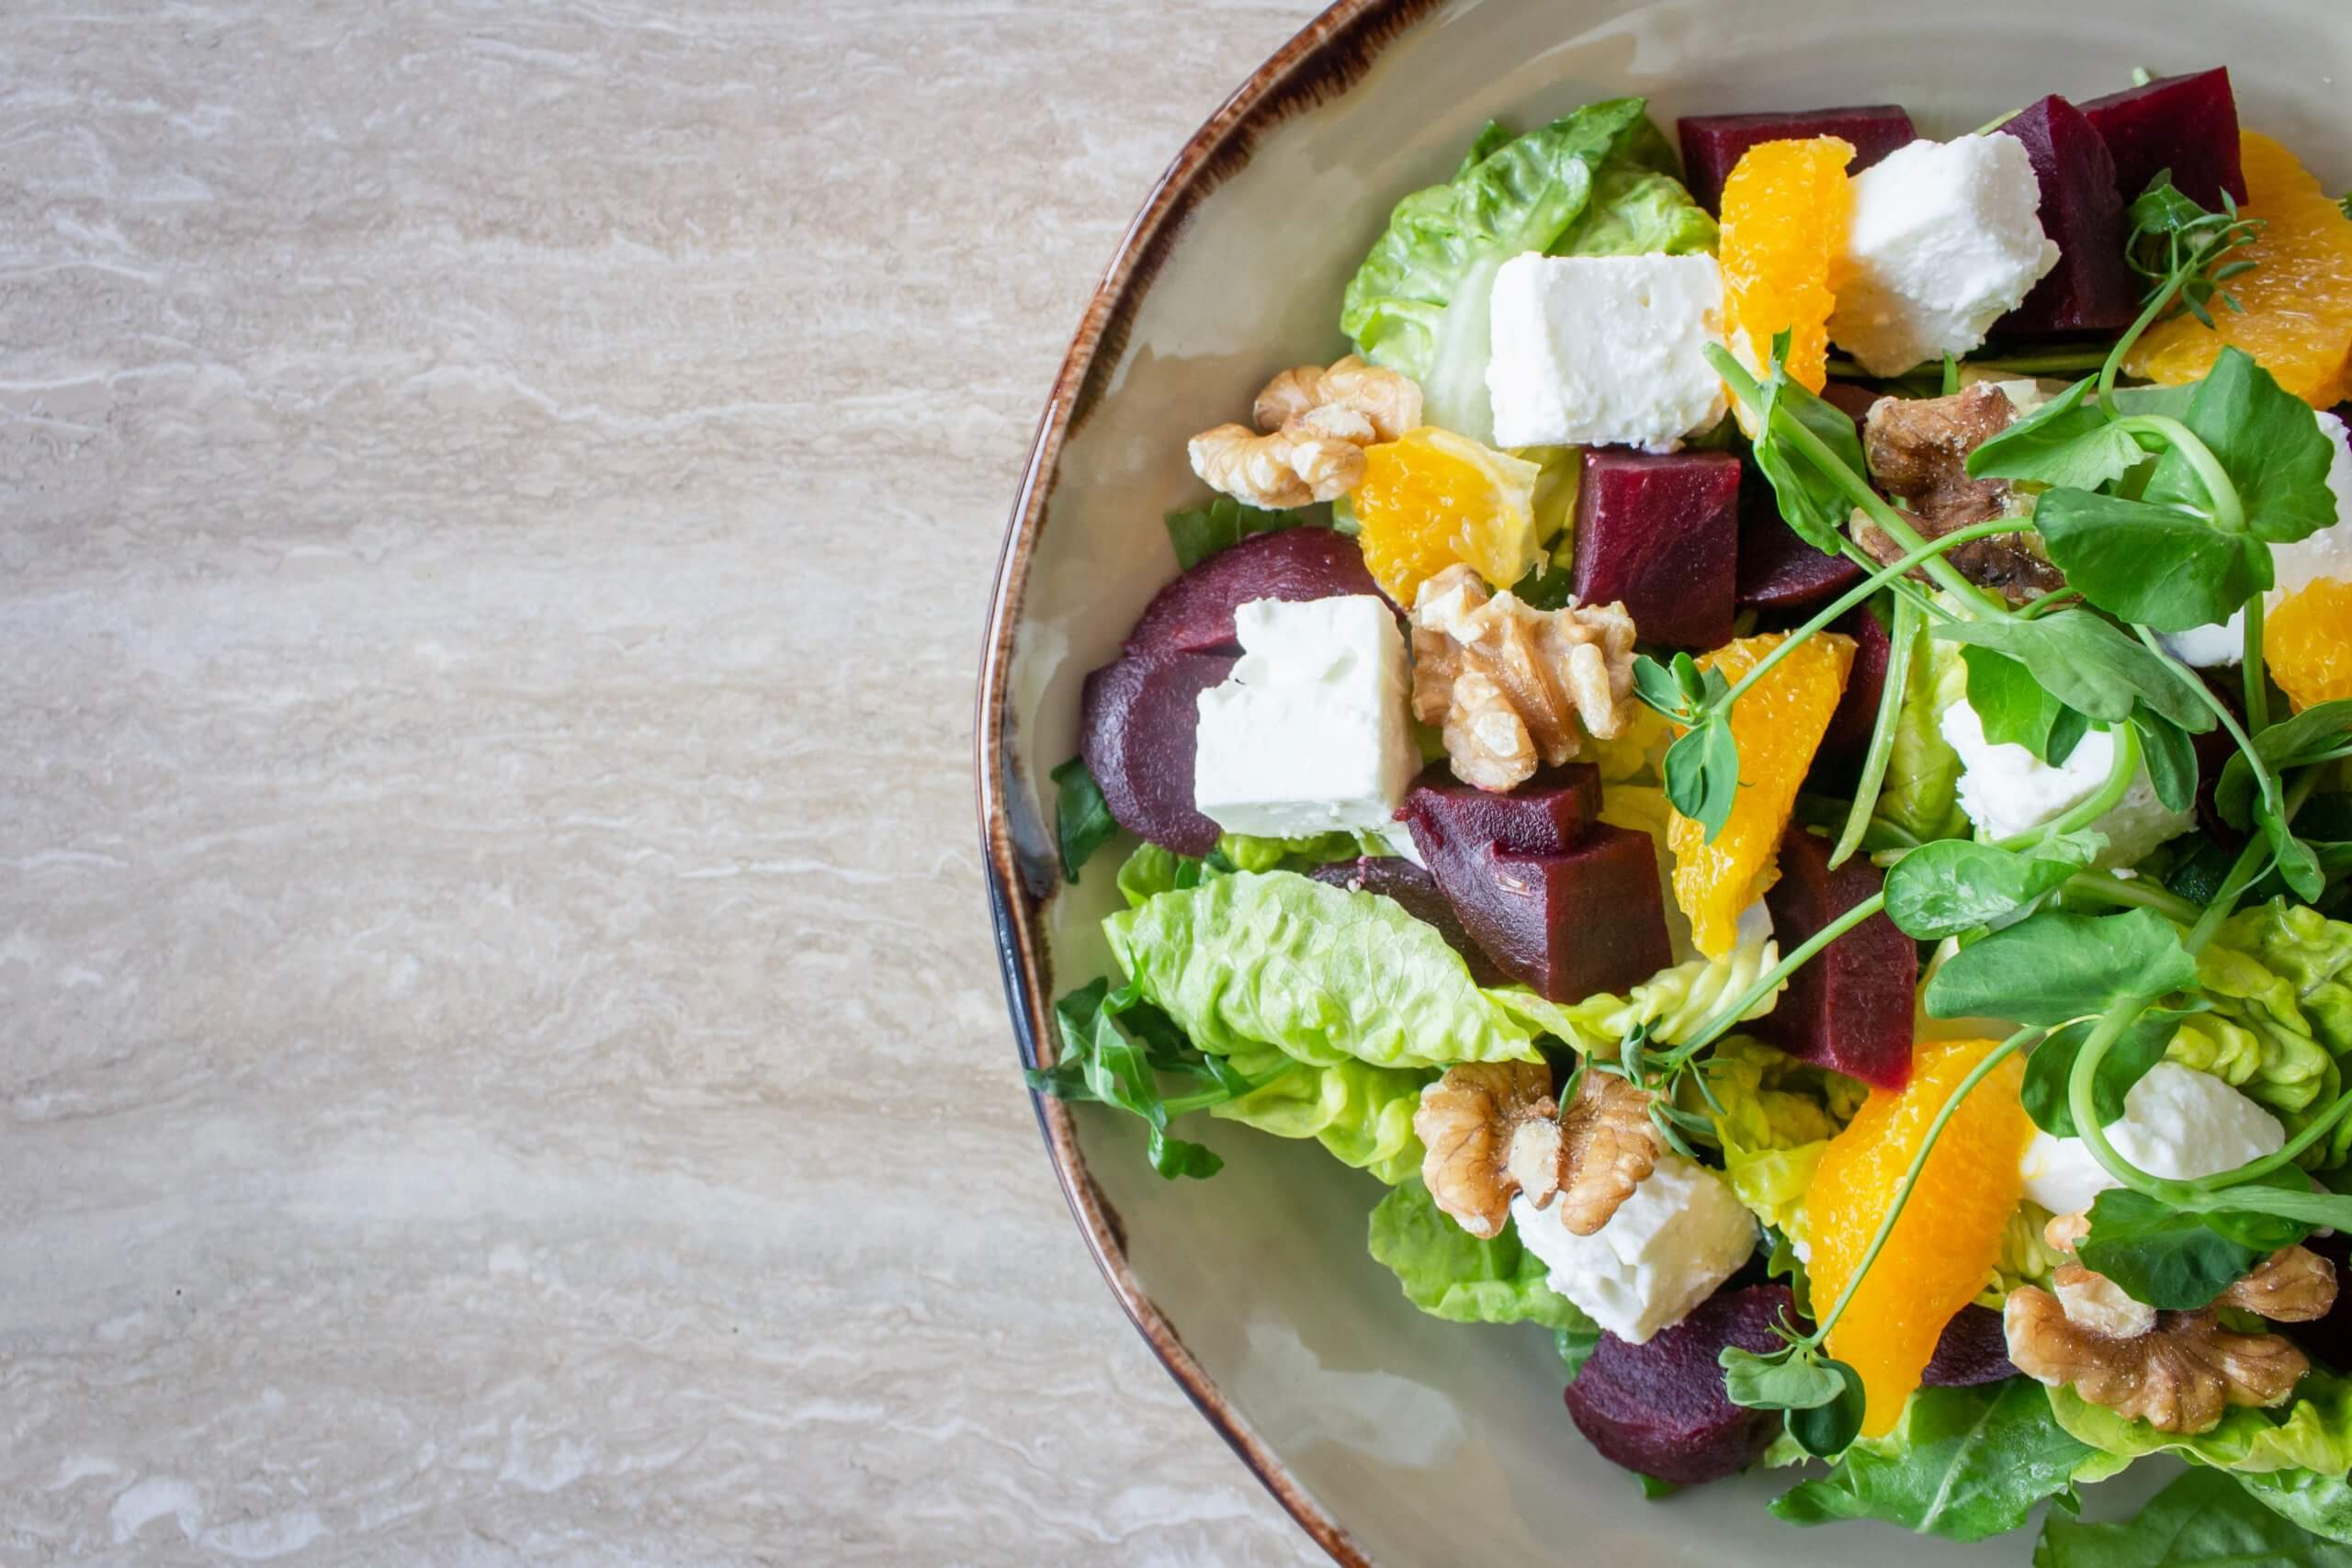 5 Mouthwatering Summer Salad Recipes For Your Next Picnic